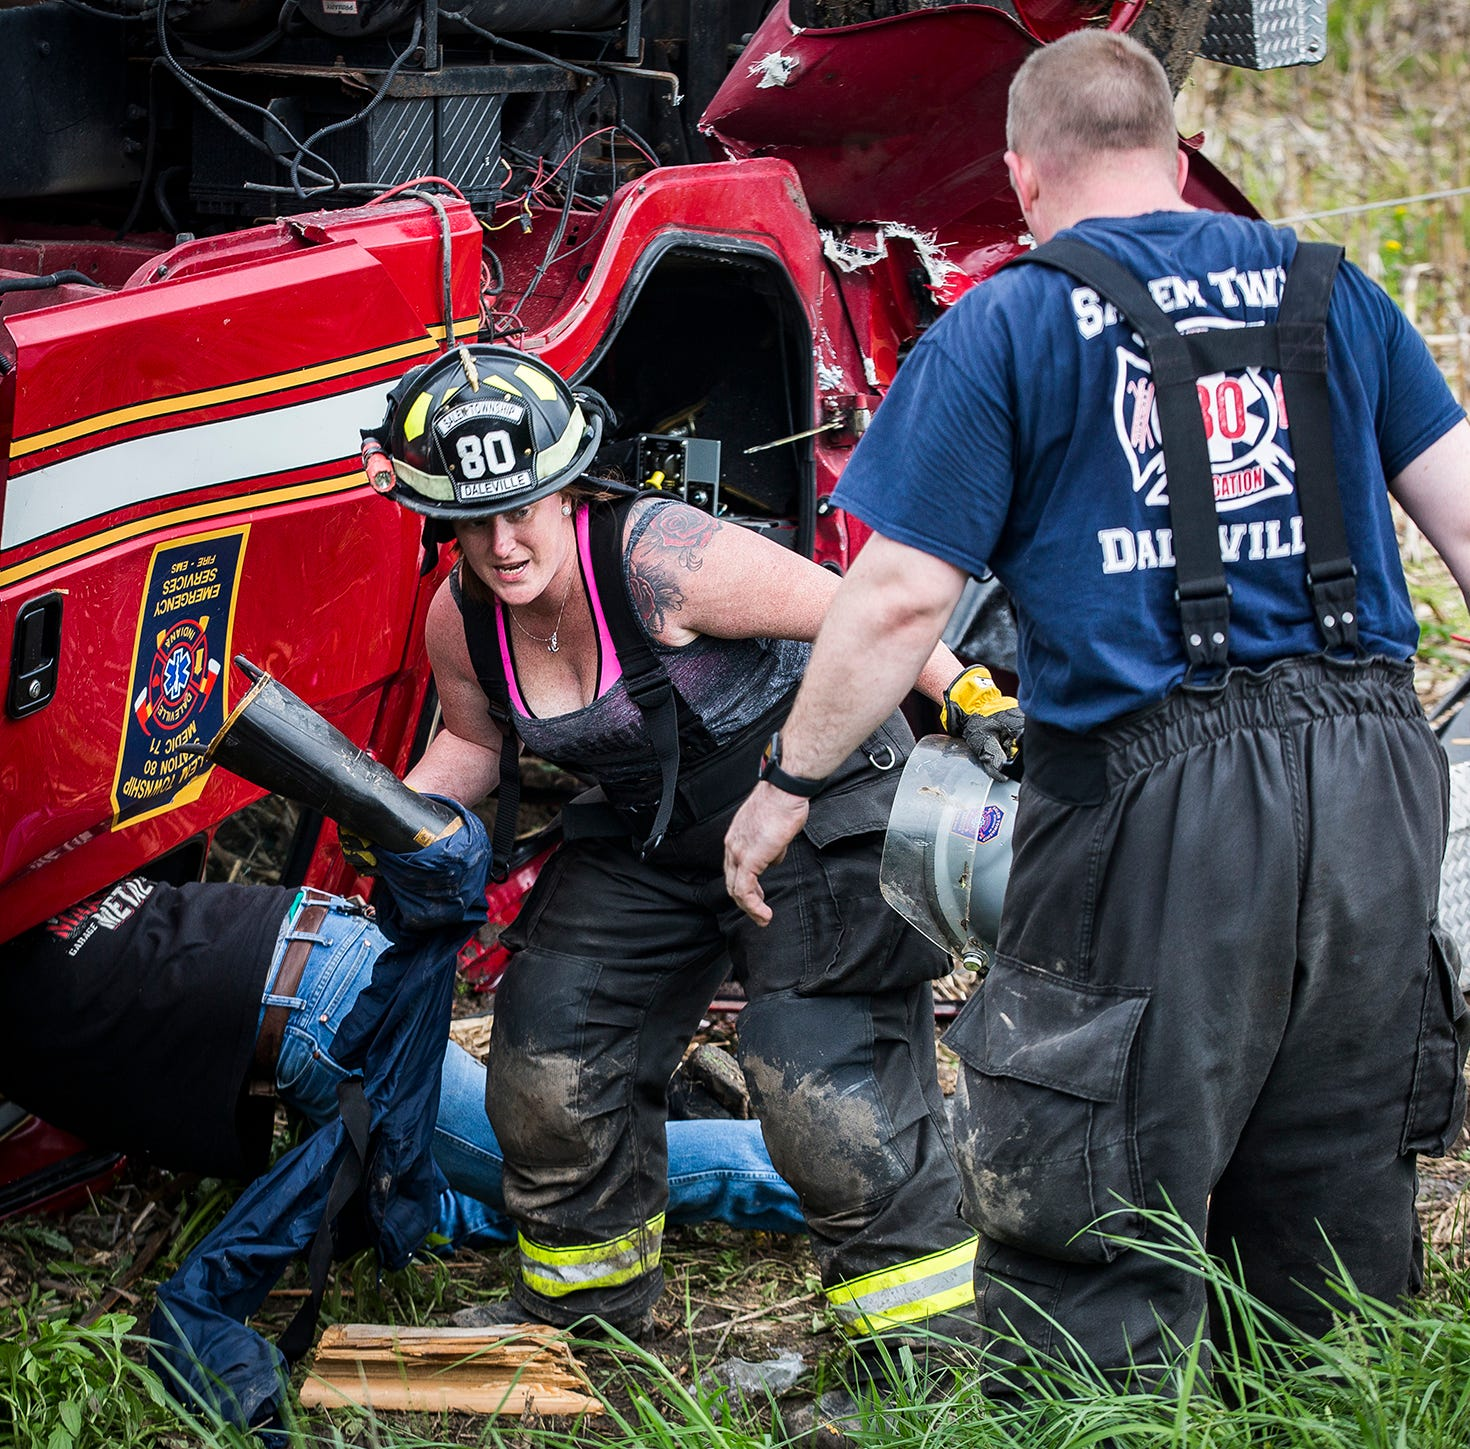 Daleville firefighter in serious condition after fire truck accident